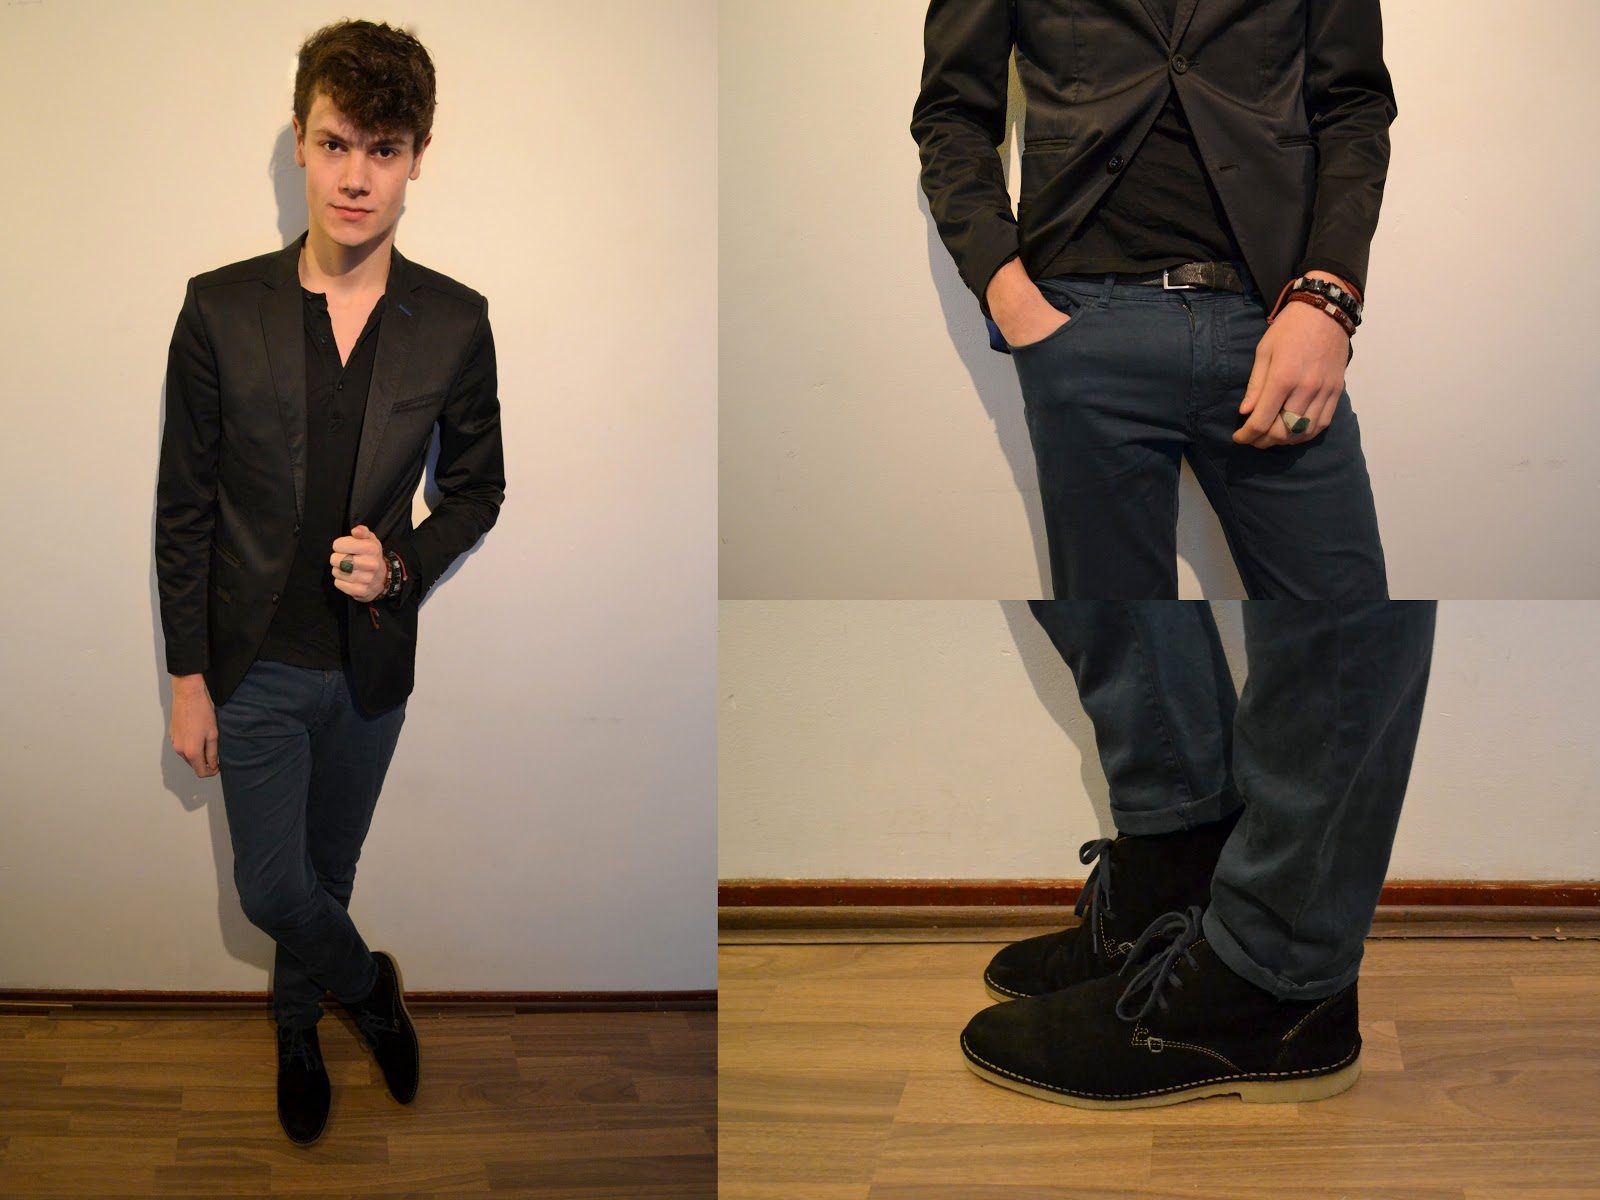 Brown shoes jeans and black jacket